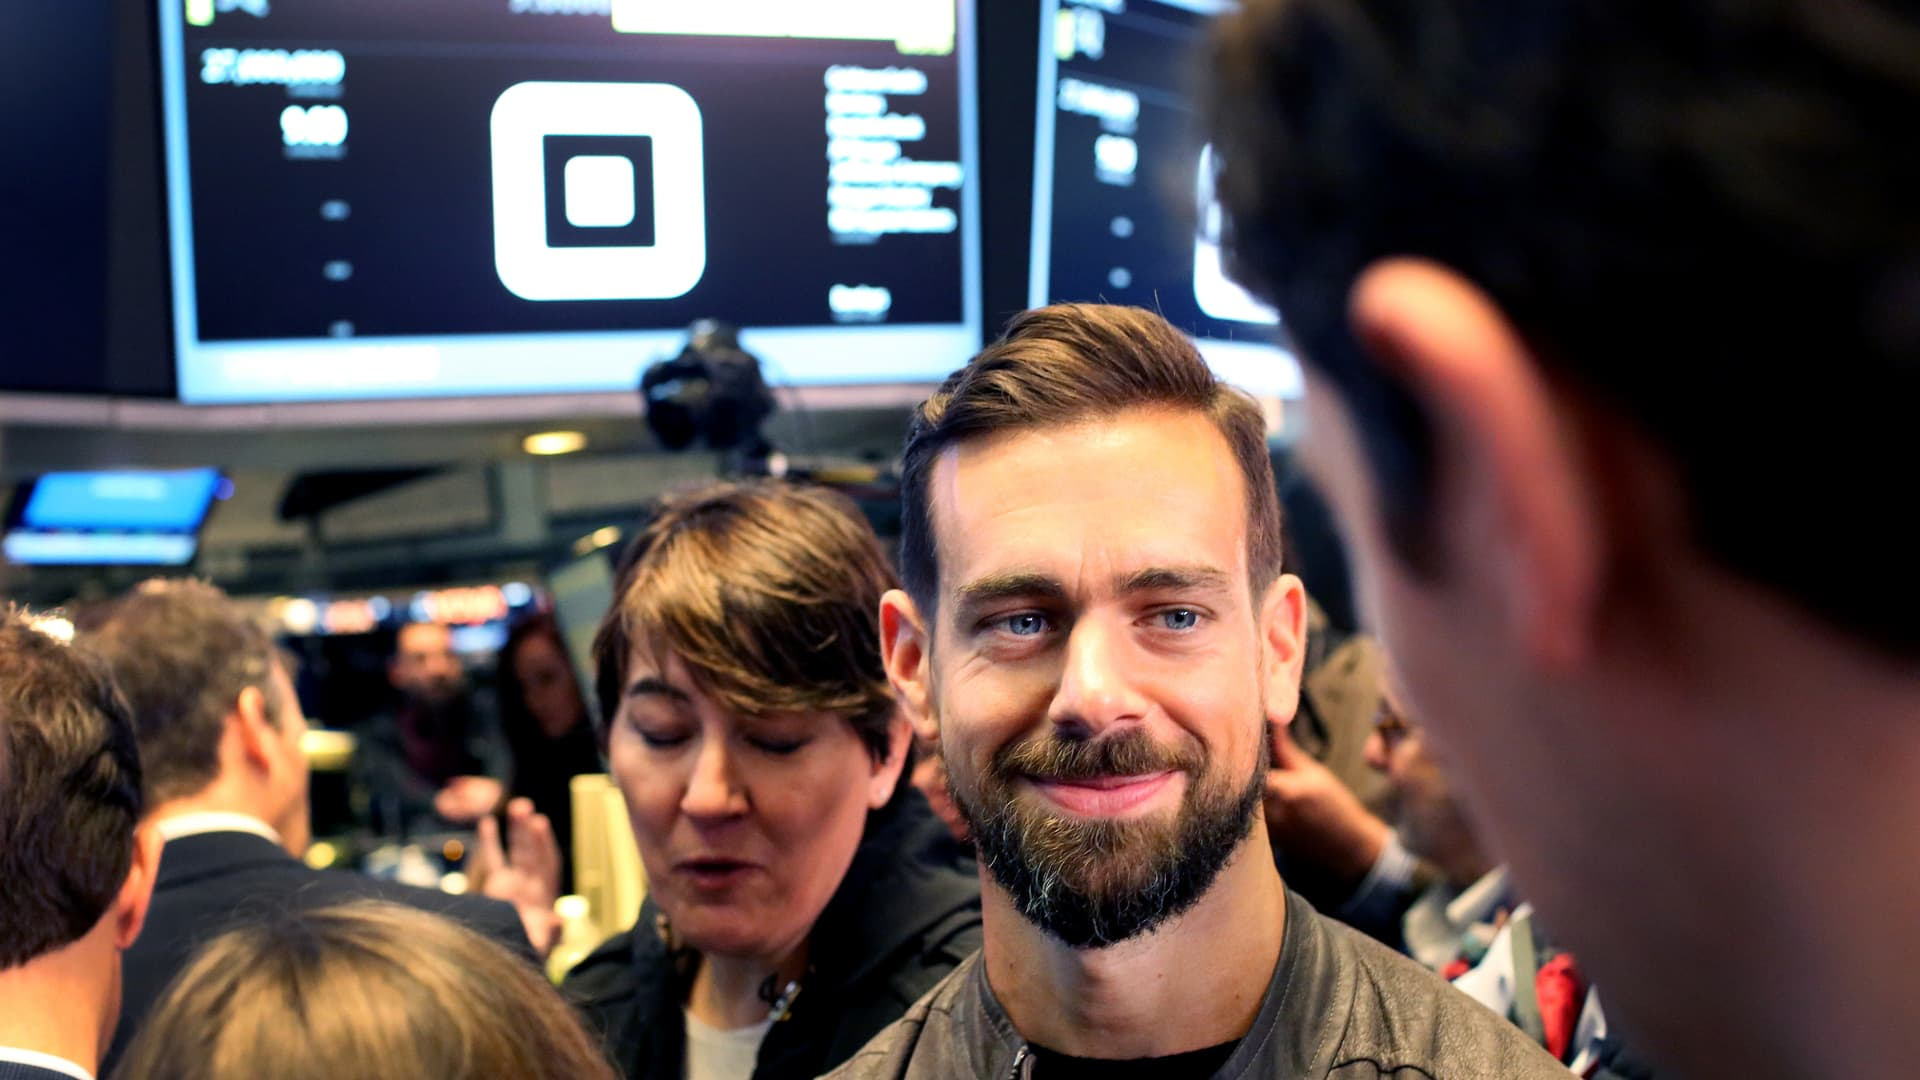 Jack Dorsey, chief executive officer of Square Inc., second right, tours the floor of the New York Stock Exchange (NYSE) in New York, U.S., on Thursday, Nov. 19, 2015.